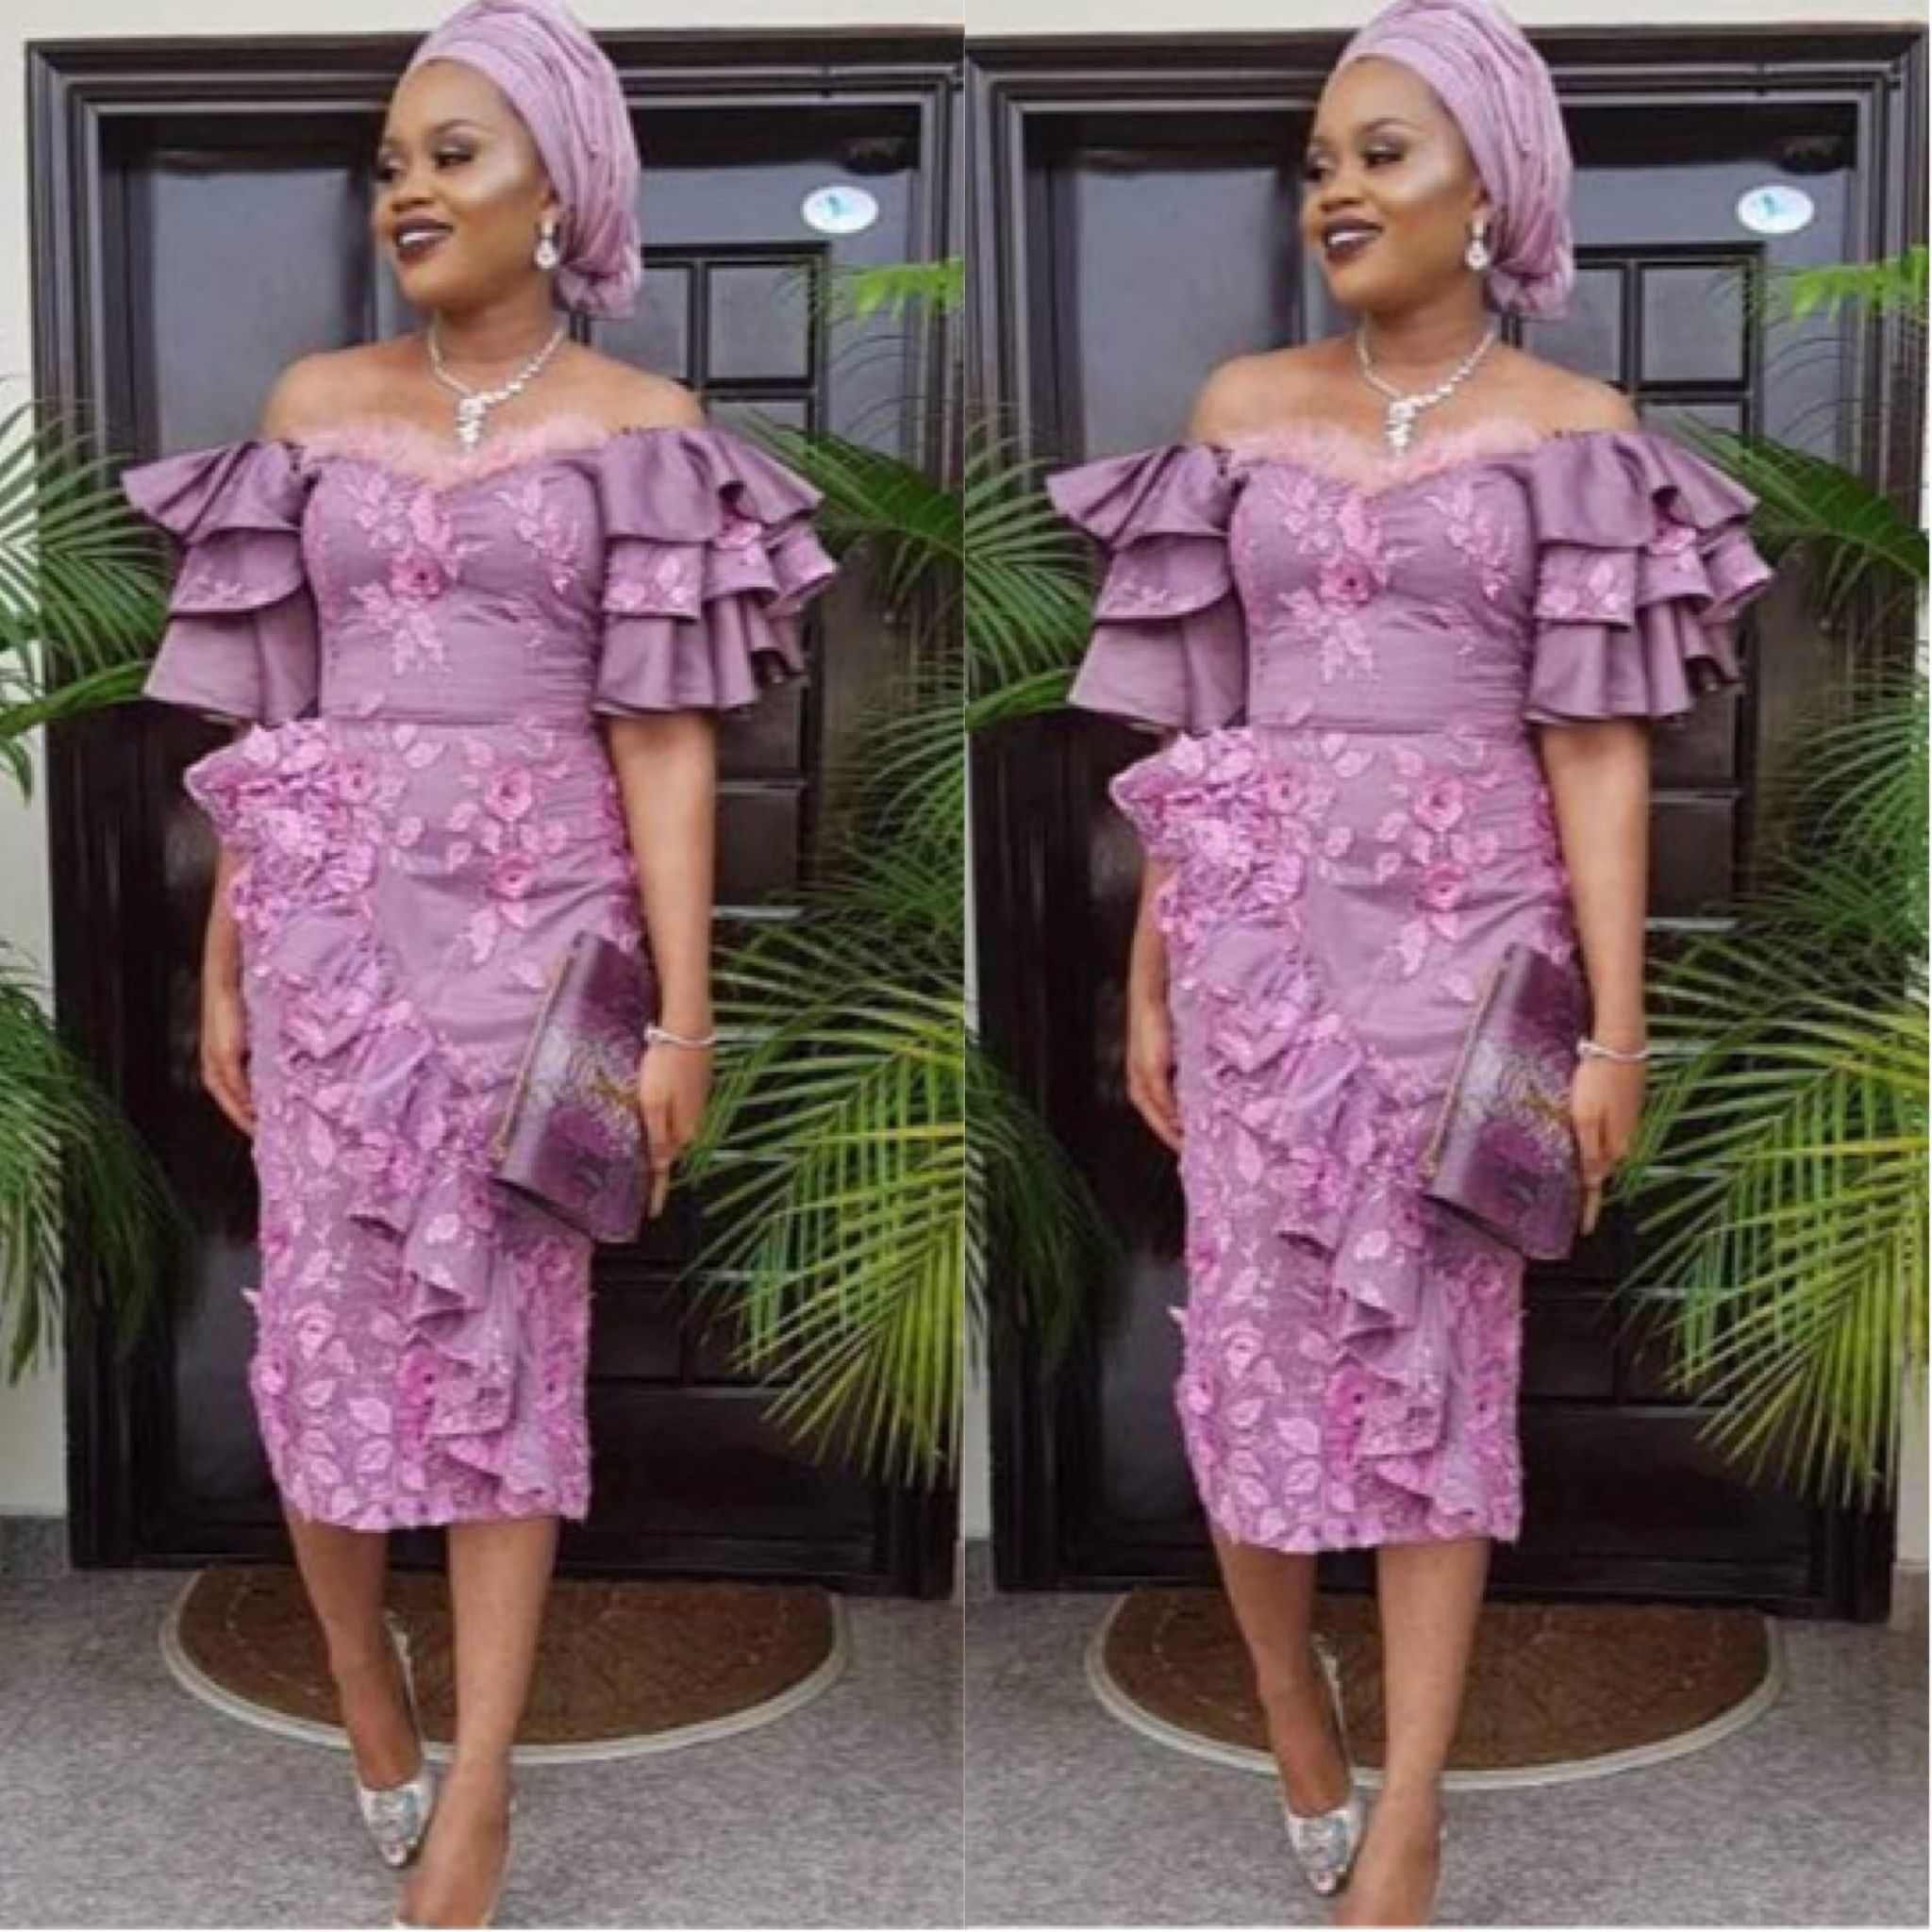 Lace short dress styles in nigeria  Pin by Mimi Asita on African outfits  Pinterest  Africans African